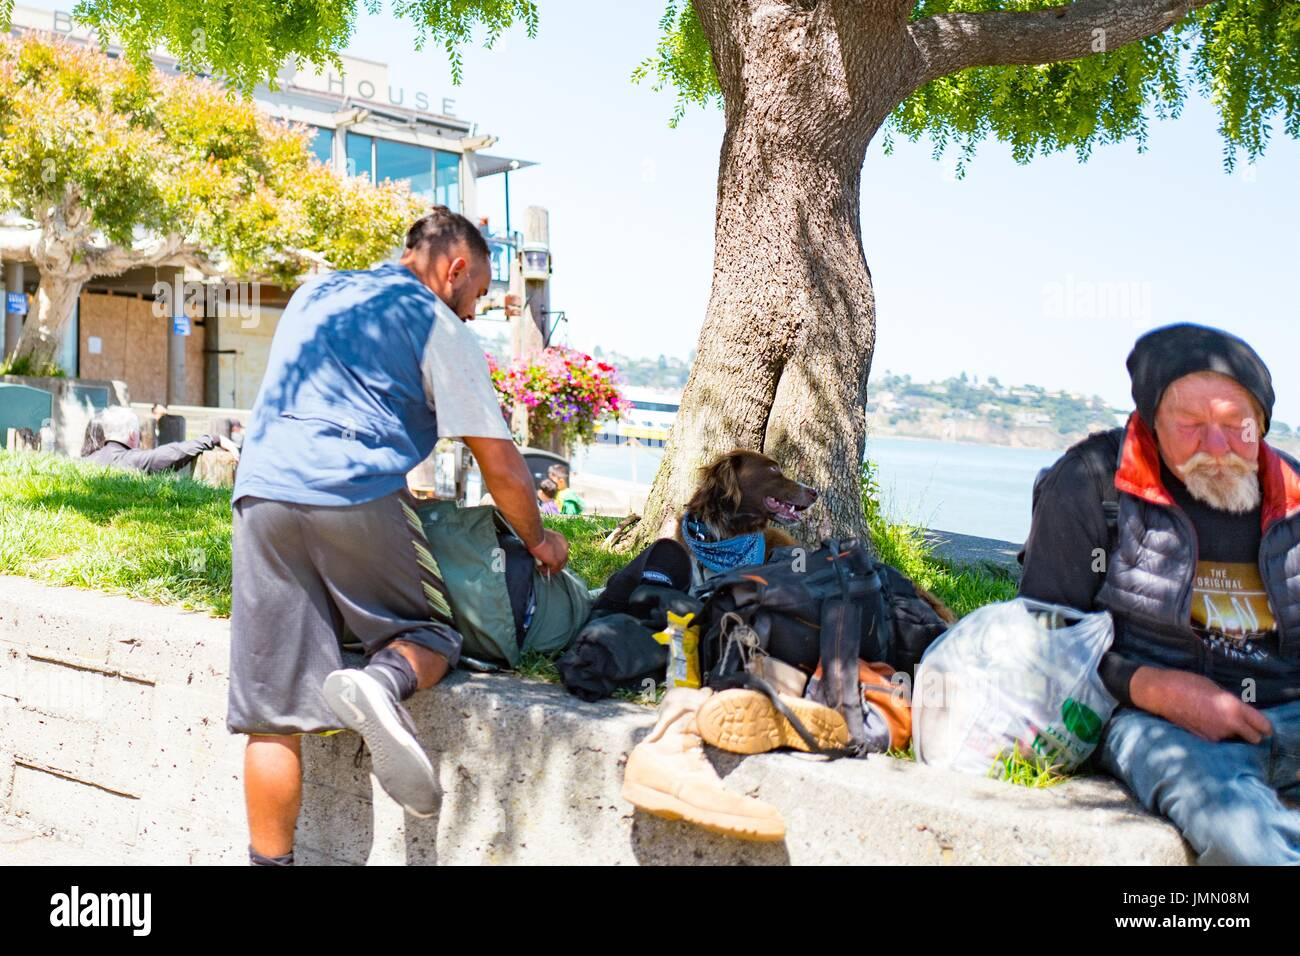 A homeless man and a traveler with a dog sit in Yee Tock Chee park on Bridgeway Road in the San Francisco Bay Area town of Sausalito, California, June 29, 2017. - Stock Image